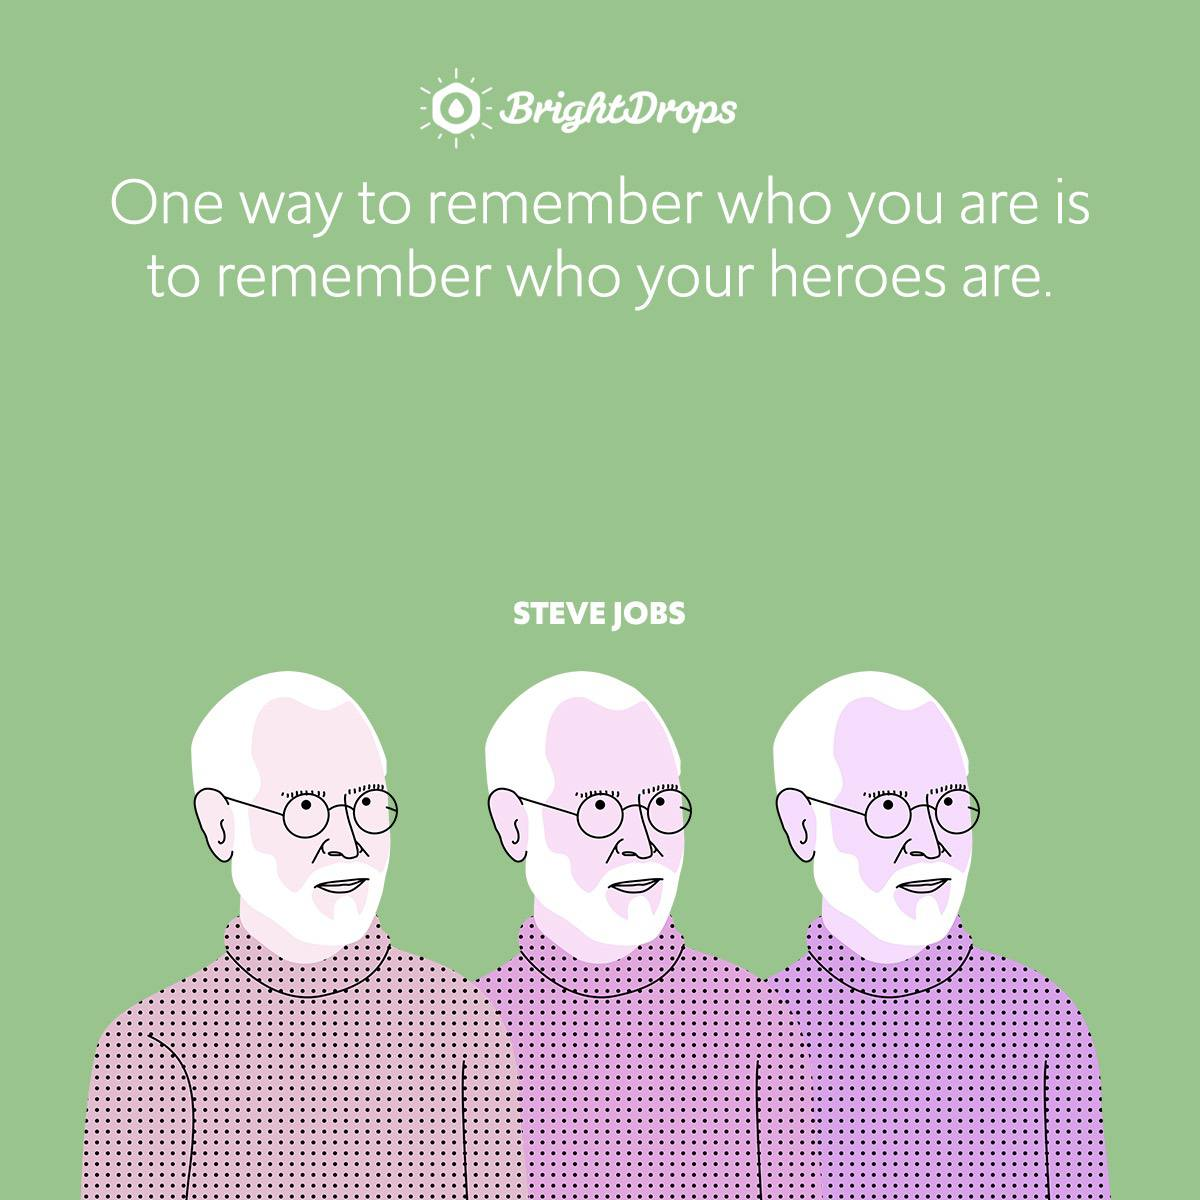 One way to remember who you are is to remember who your heroes are.